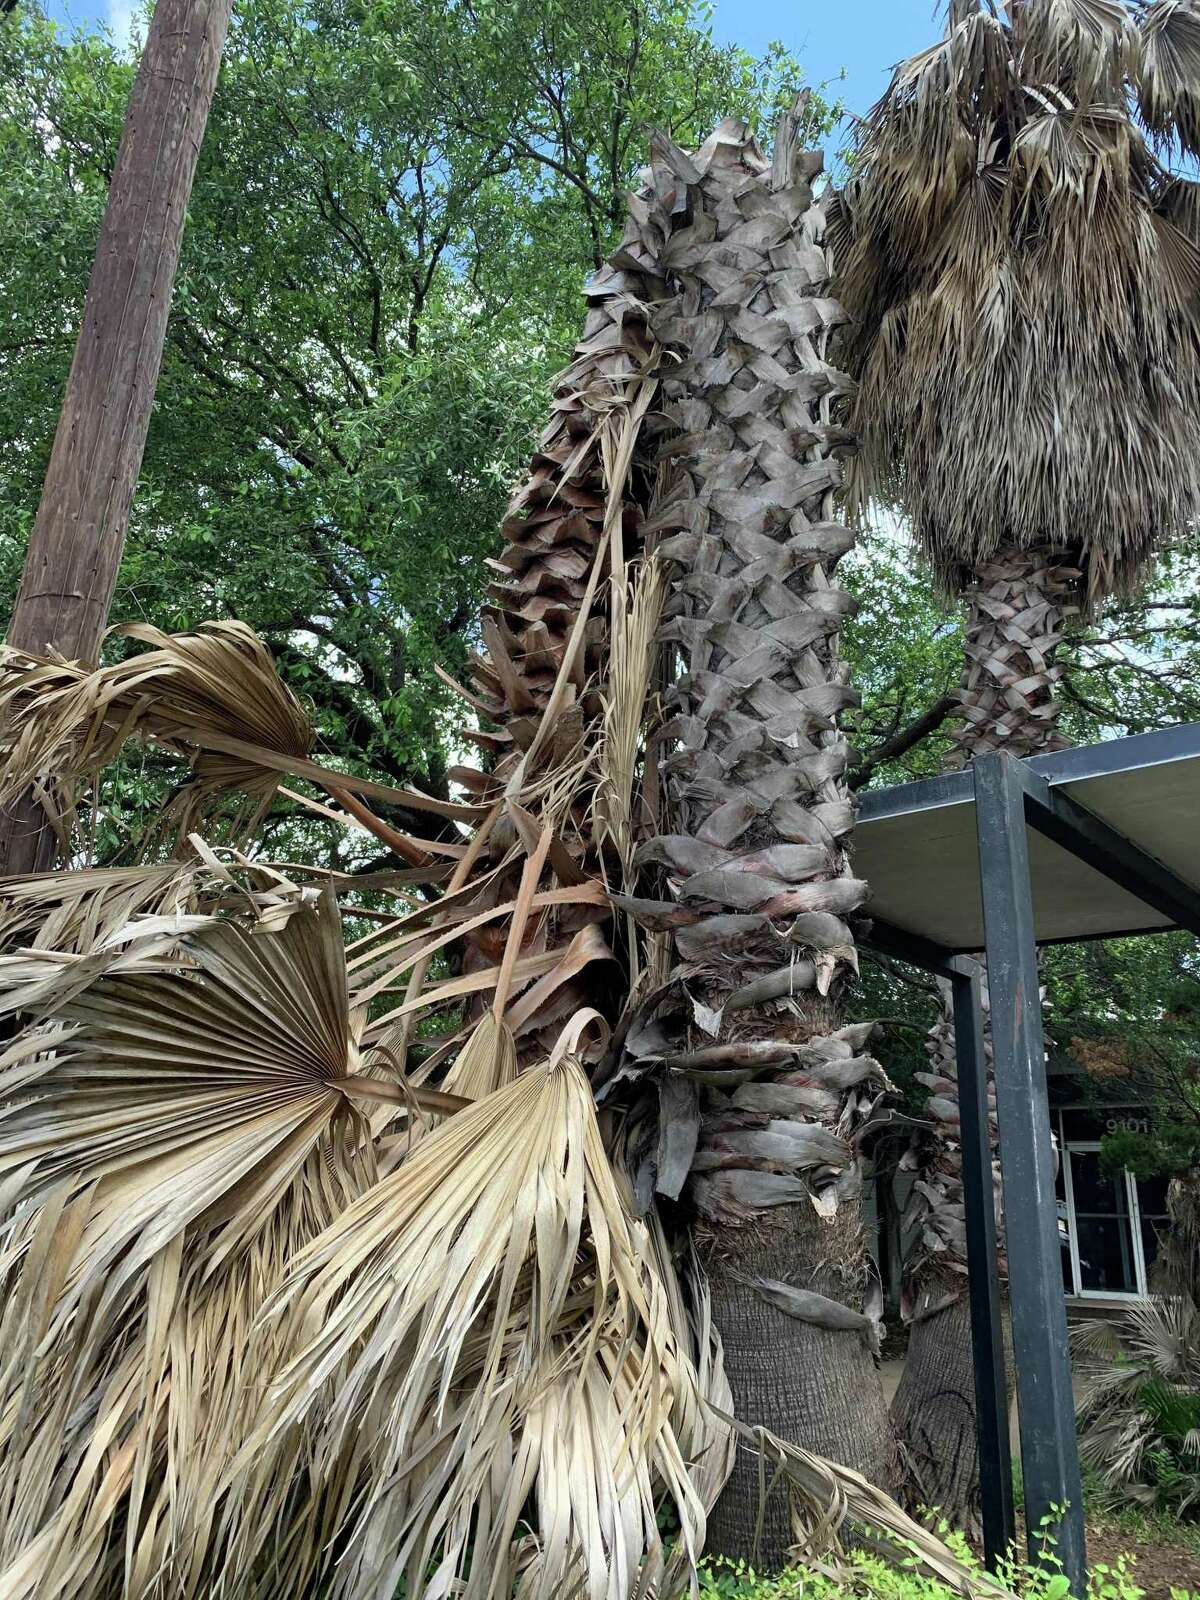 These tall palm trees seemed to be recovering from the freeze until they suddenly died, bending over near the top.